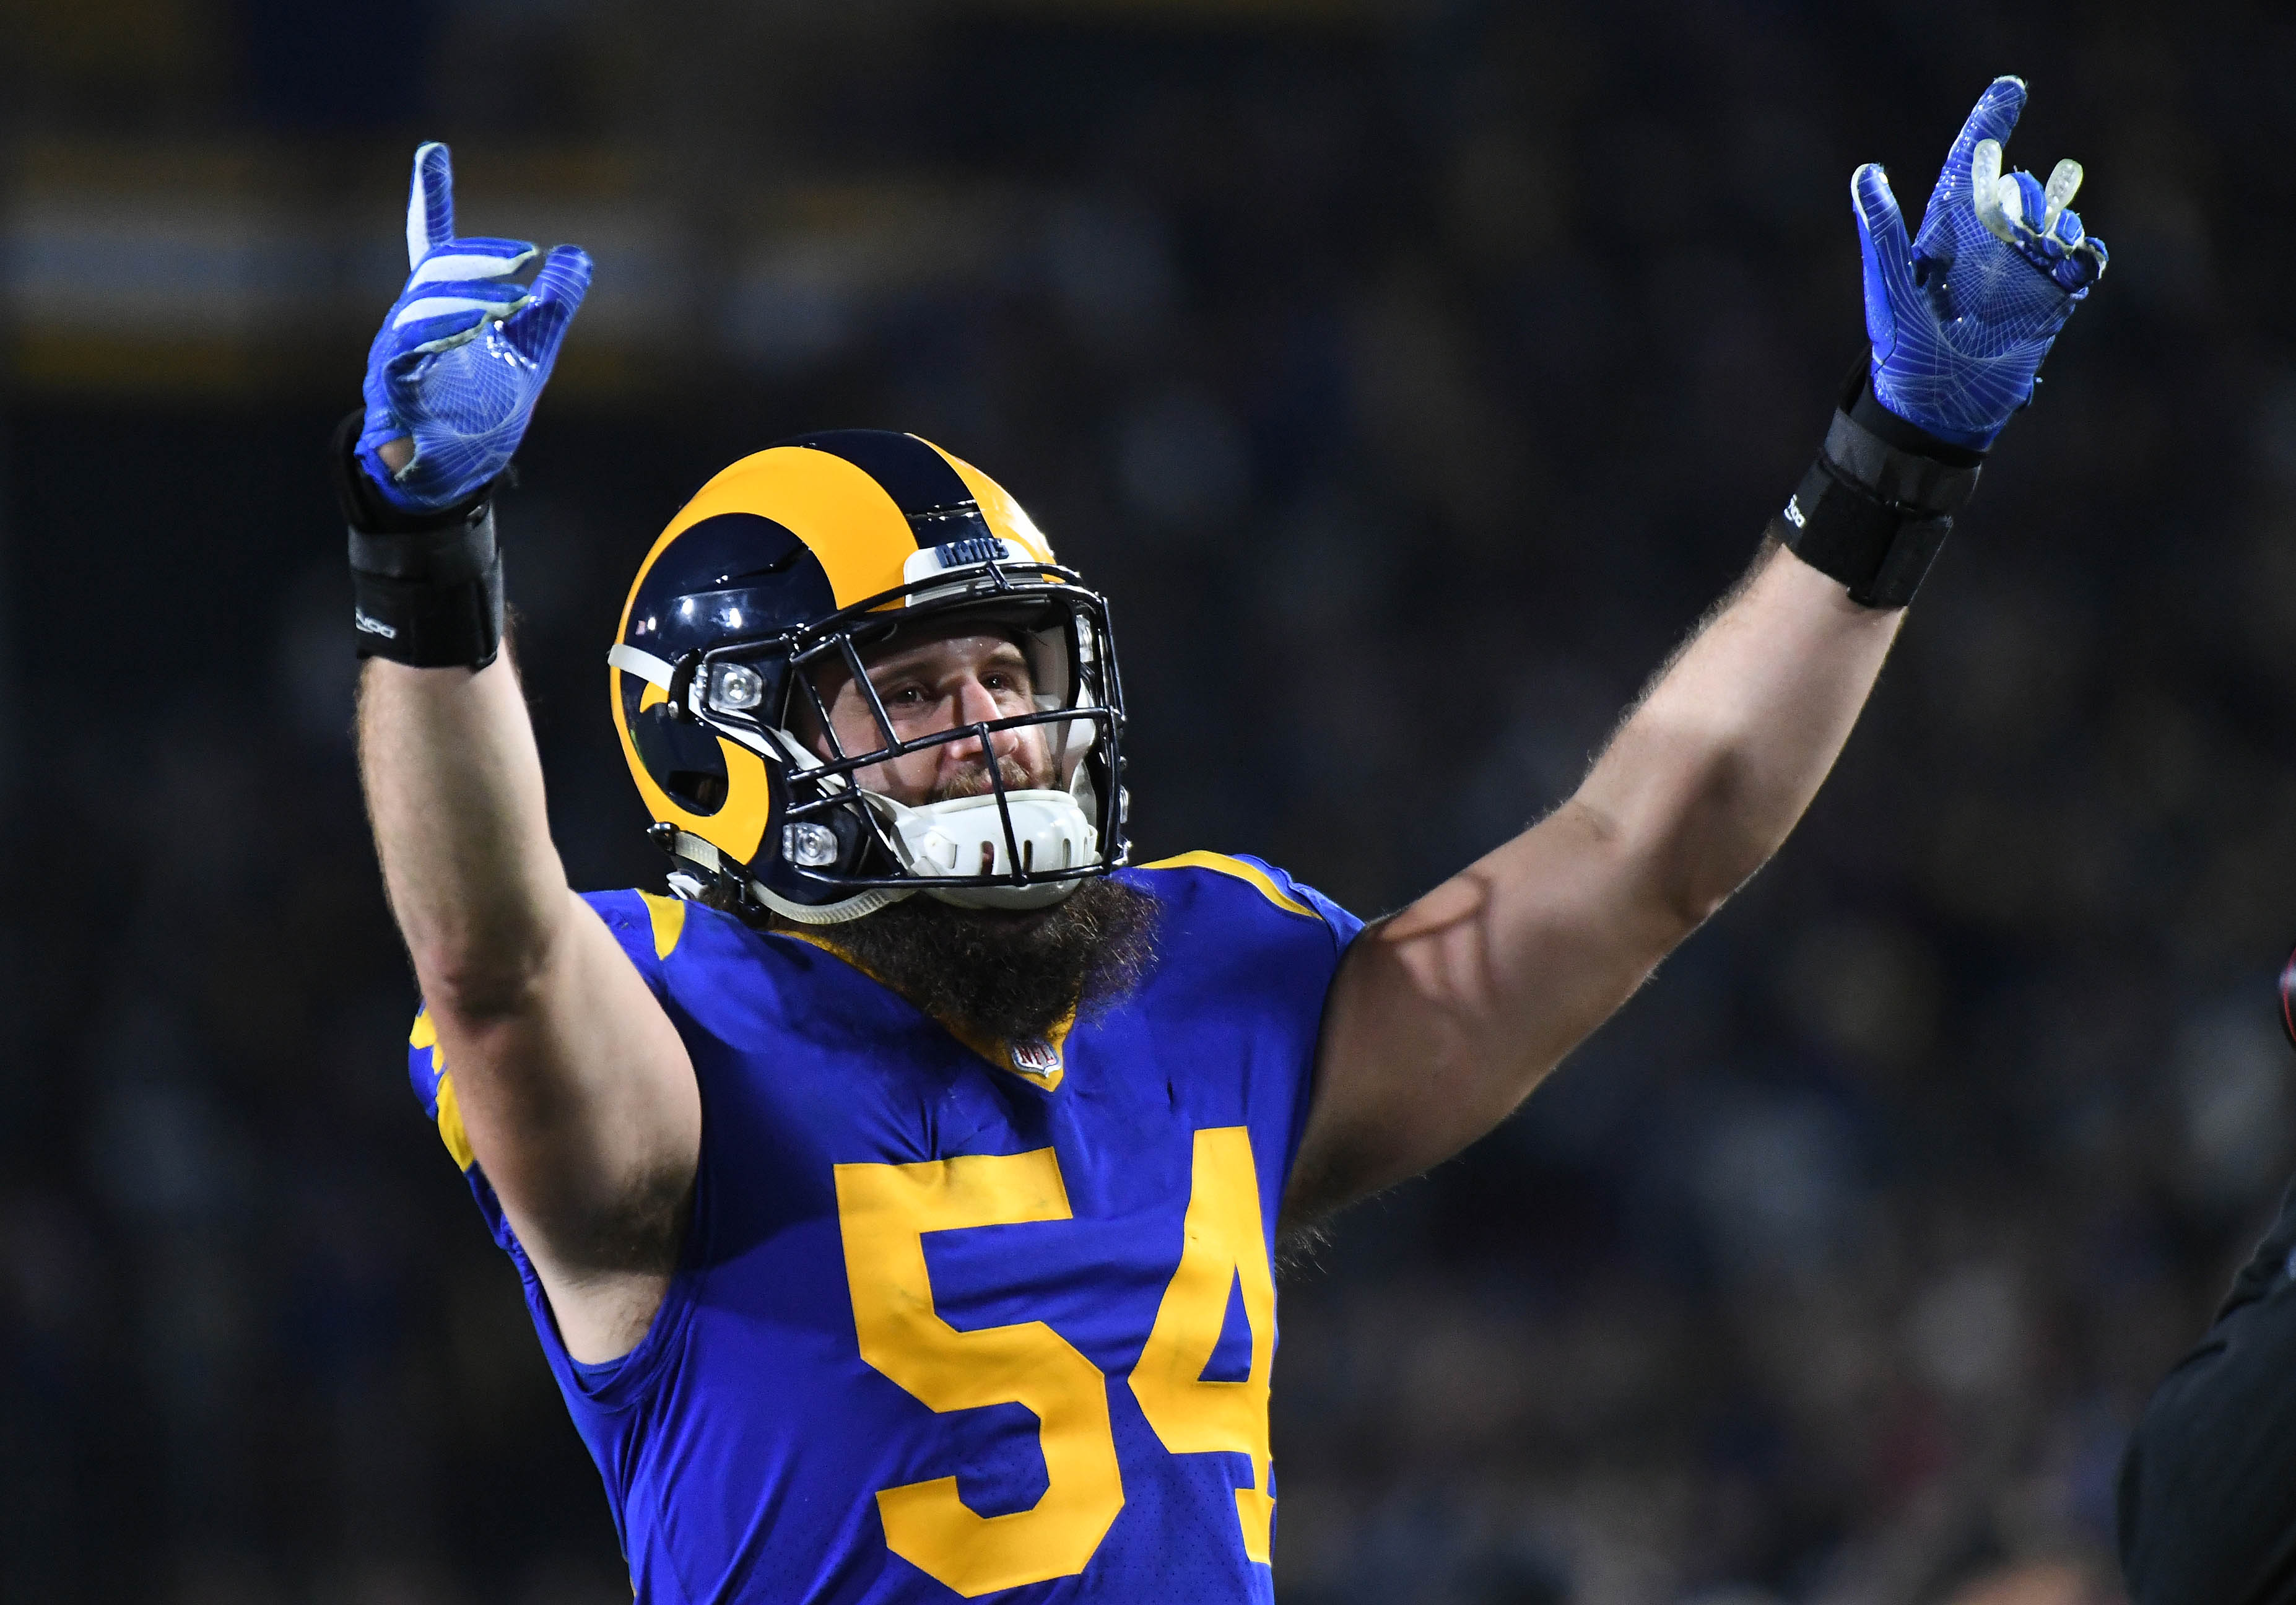 Los Angeles Rams LB Bryce Hager celebrates after a win against the Dallas Cowboys in a NFC Divisional playoff football game, Jan. 12, 2019.